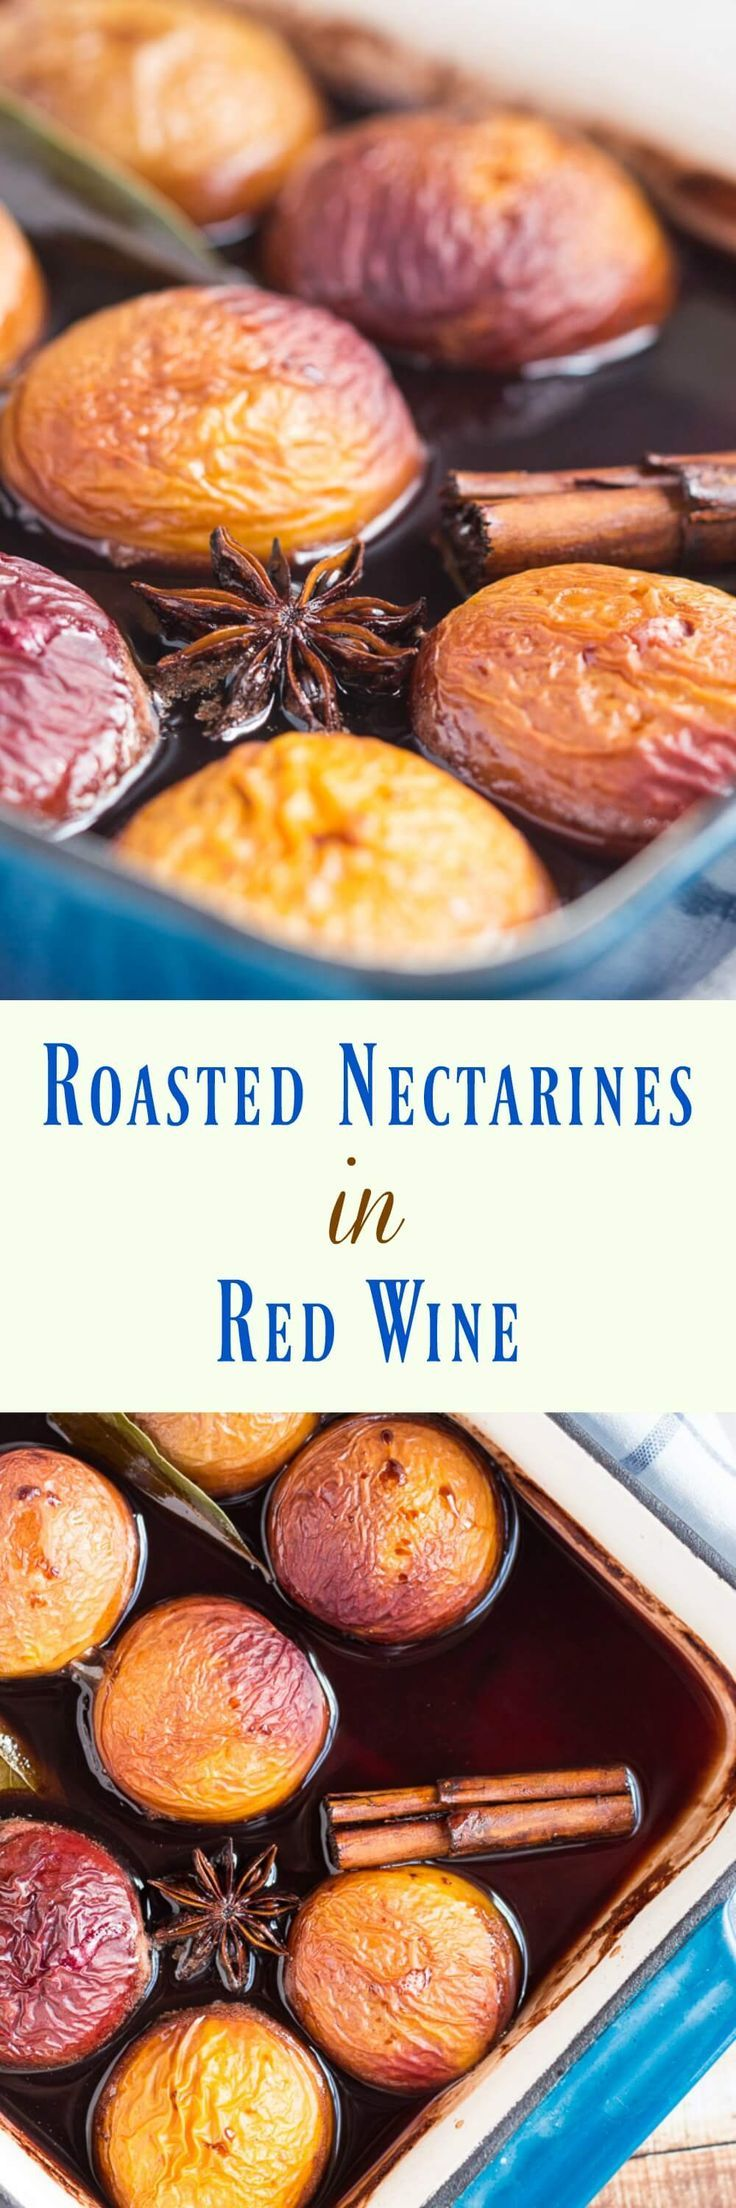 Nectarines in red wine are the perfect make-ahead dessert for summer entertaining.    Healthy | Recipes | Gluten Free | Vegan | Vegans